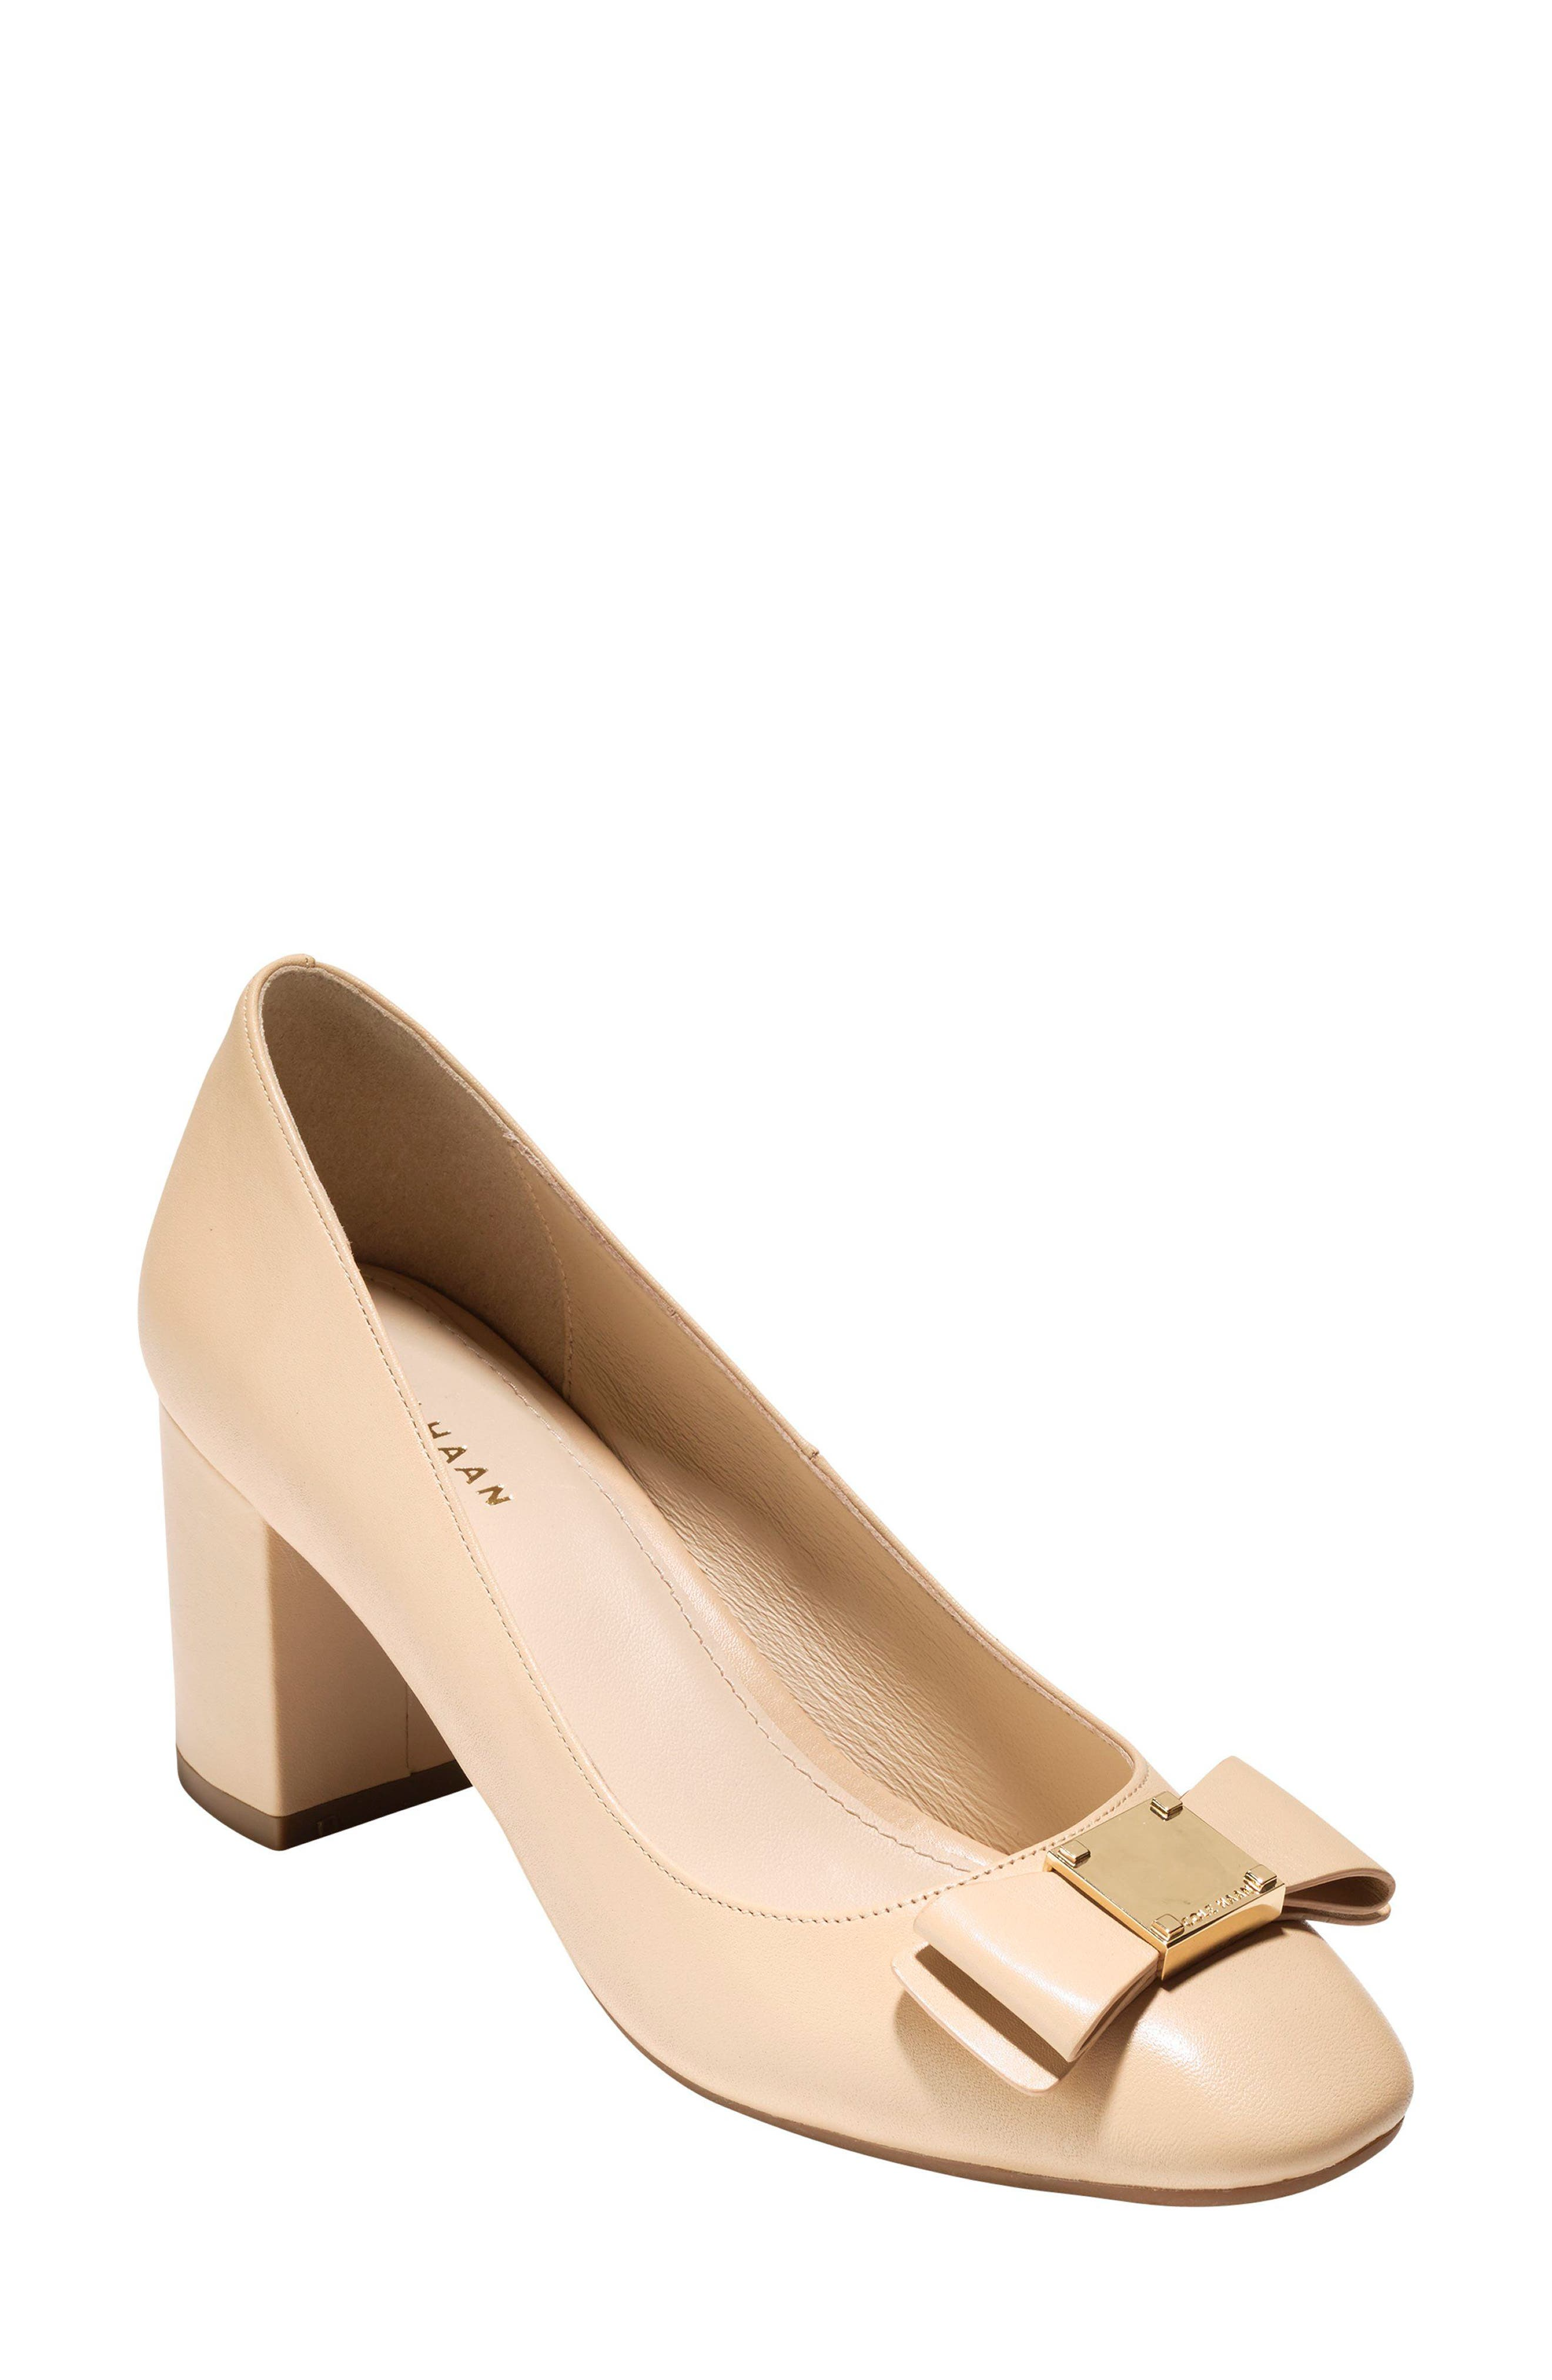 Main Image - Cole Haan Tali Bow Pump (Women)